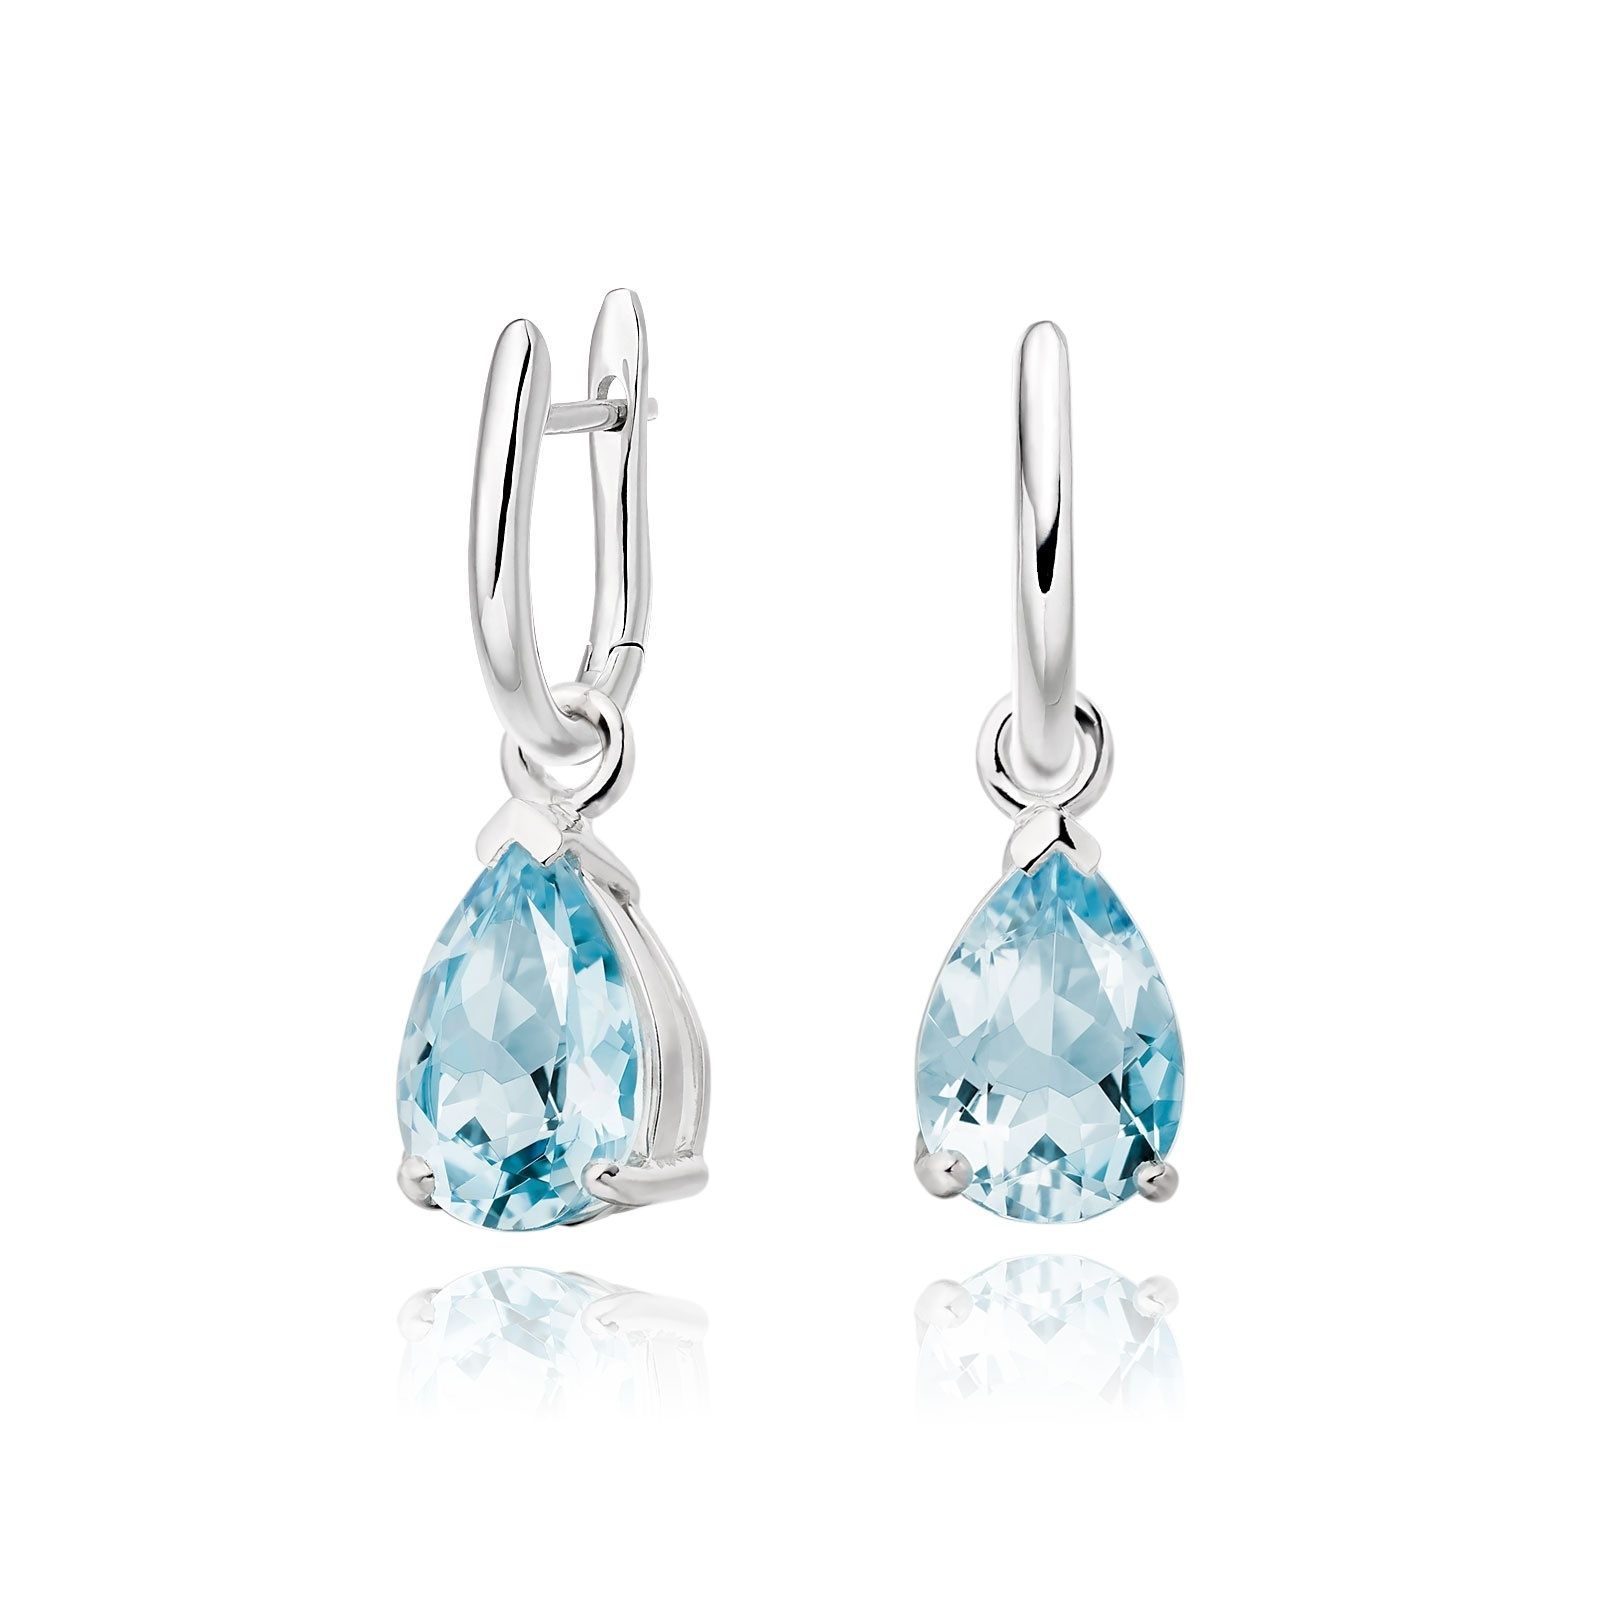 White Gold Huggie Earrings with Mythologie Aquamarine Drops--EAAQWG1245-1